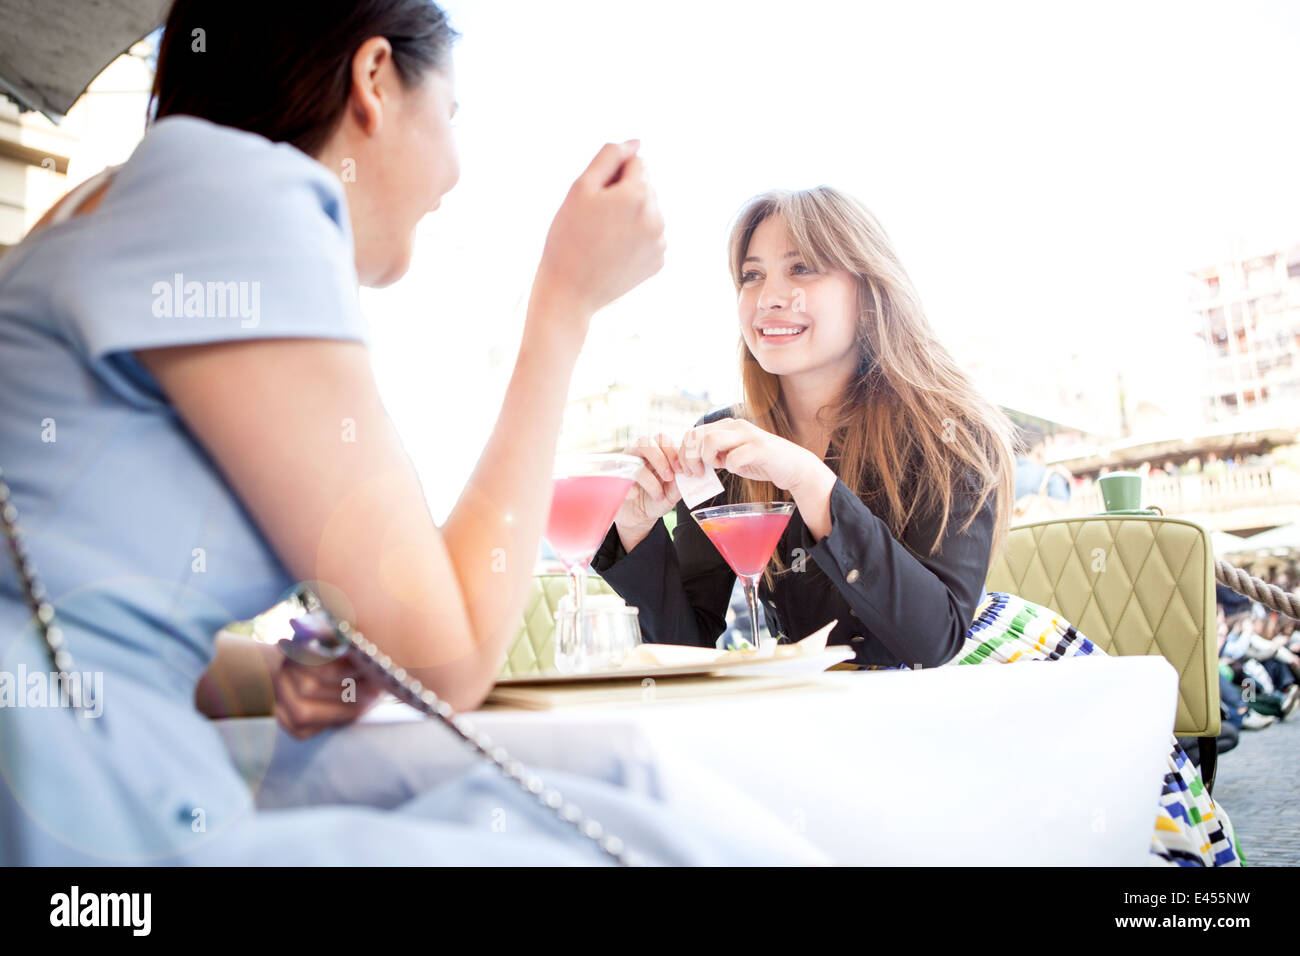 Young women sitting at table at outdoor restaurant - Stock Image